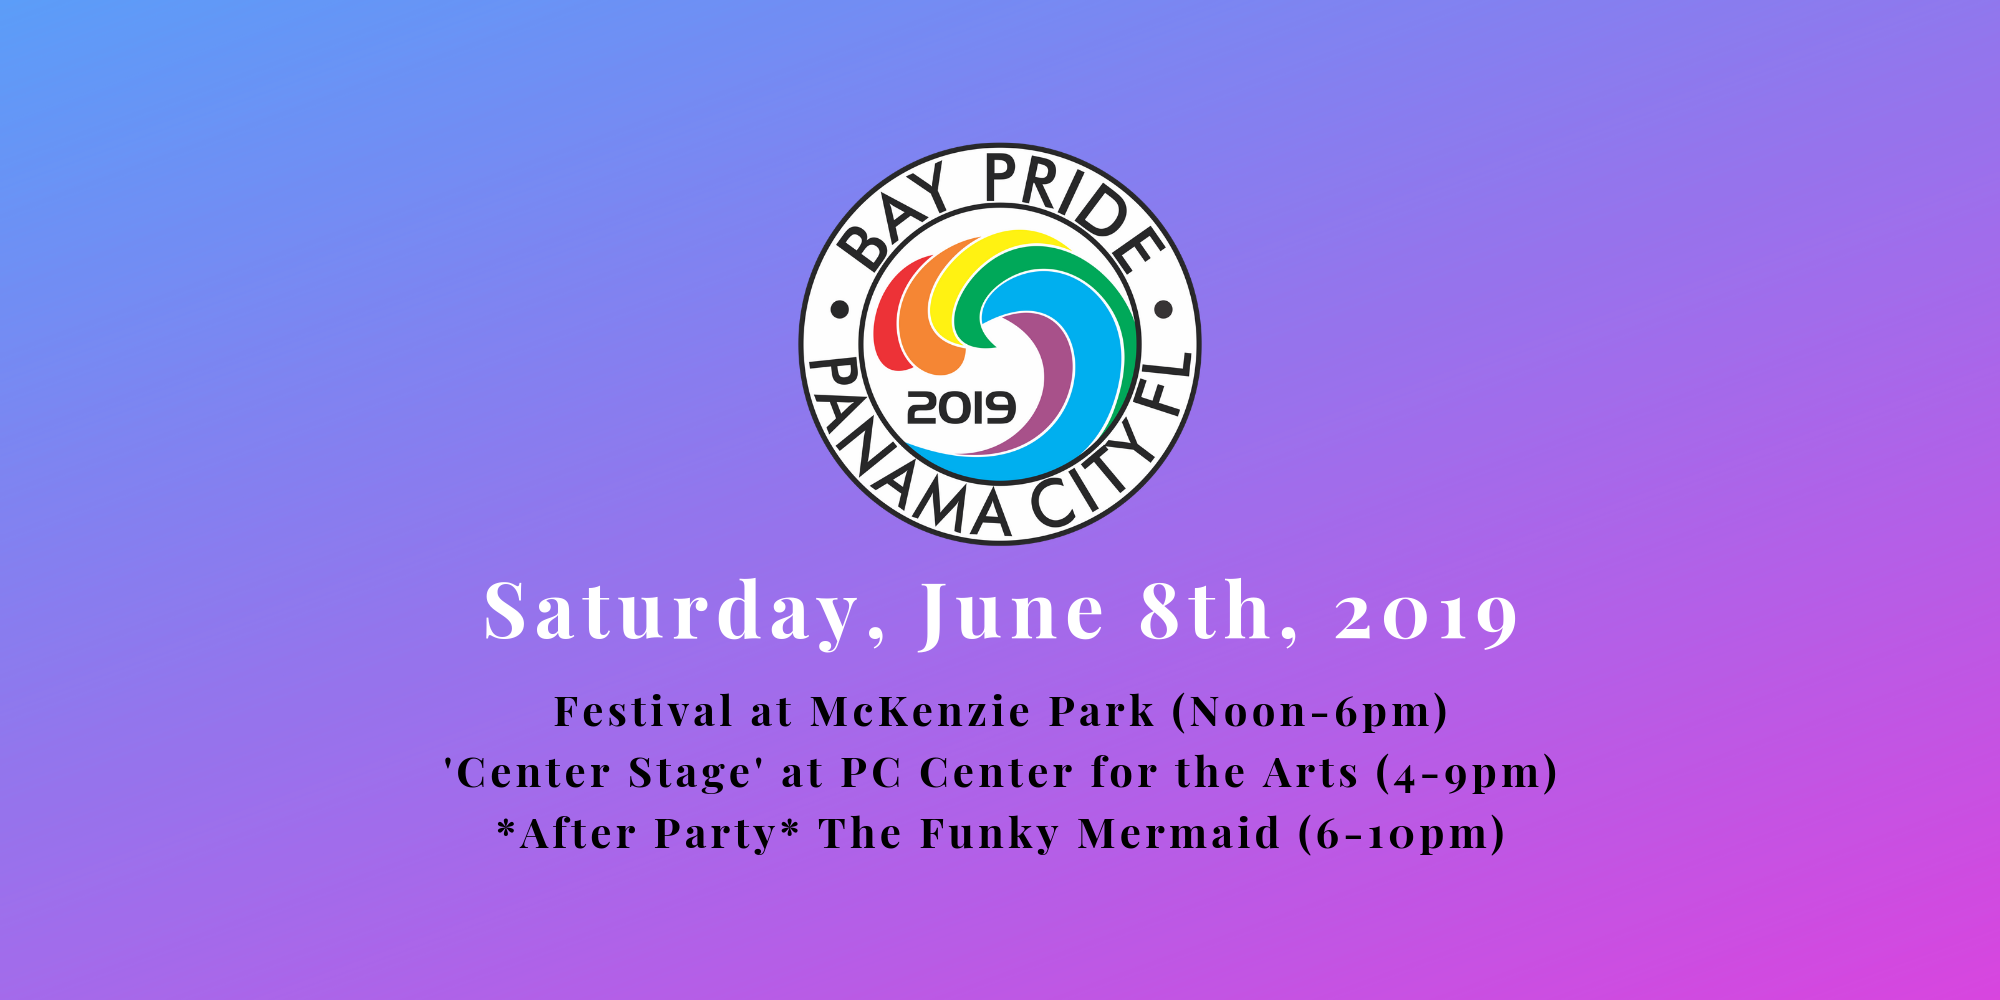 BAY PRIDE 2019 Website Banner.png